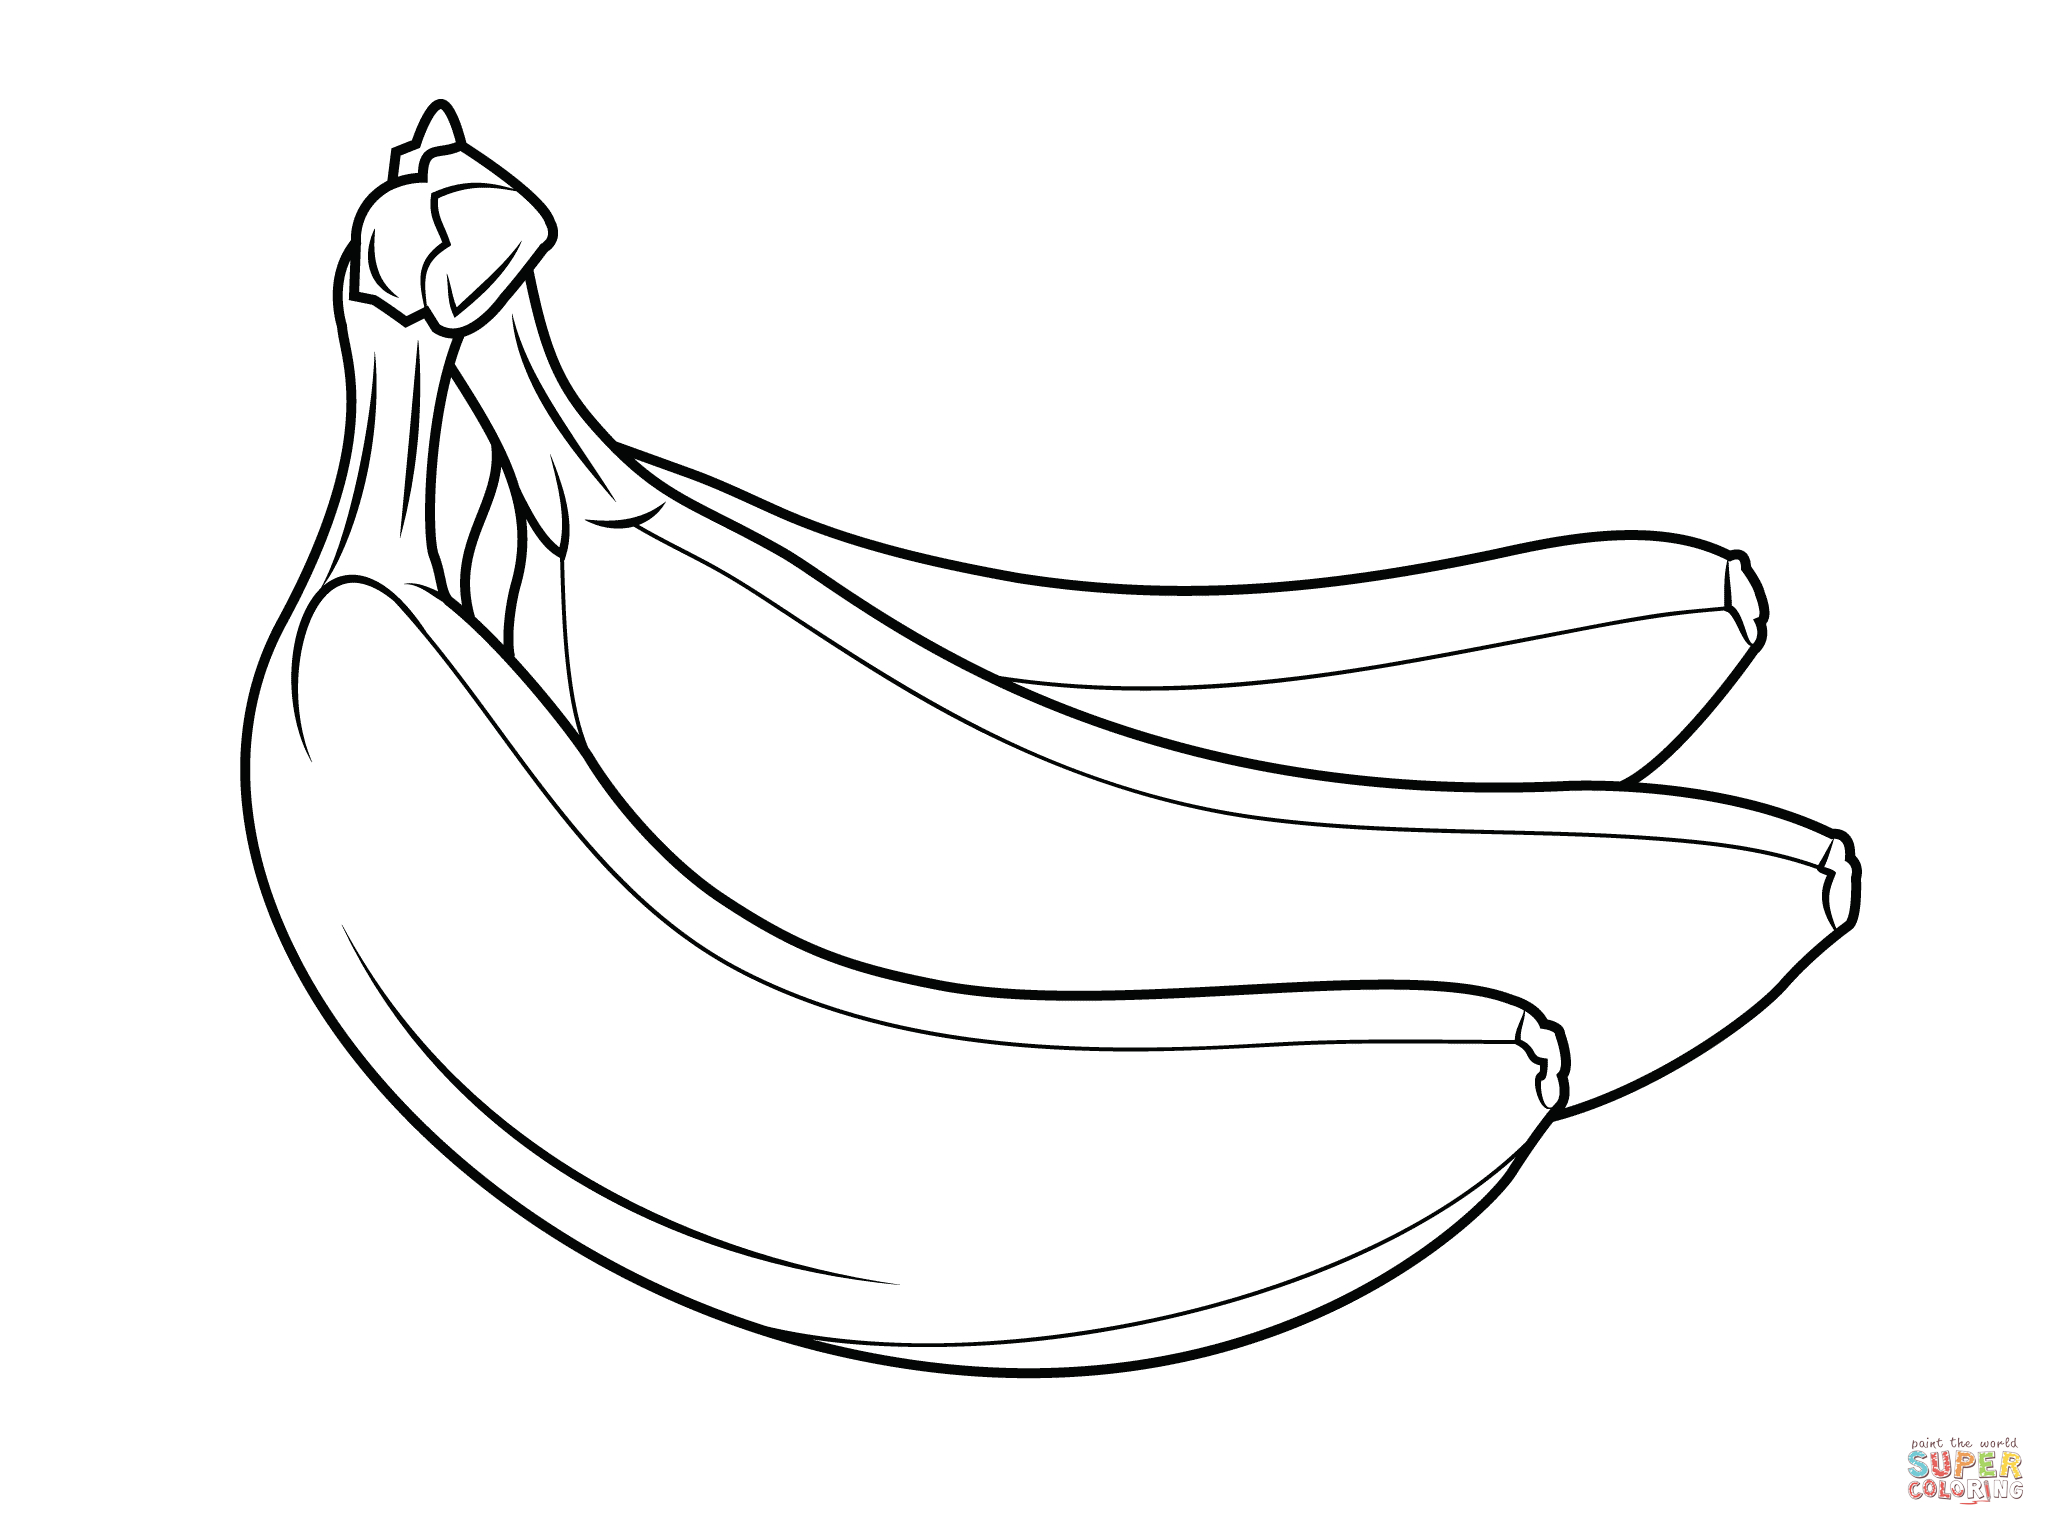 pictures of bananas to color banana coloring pages download and print banana coloring color to pictures of bananas